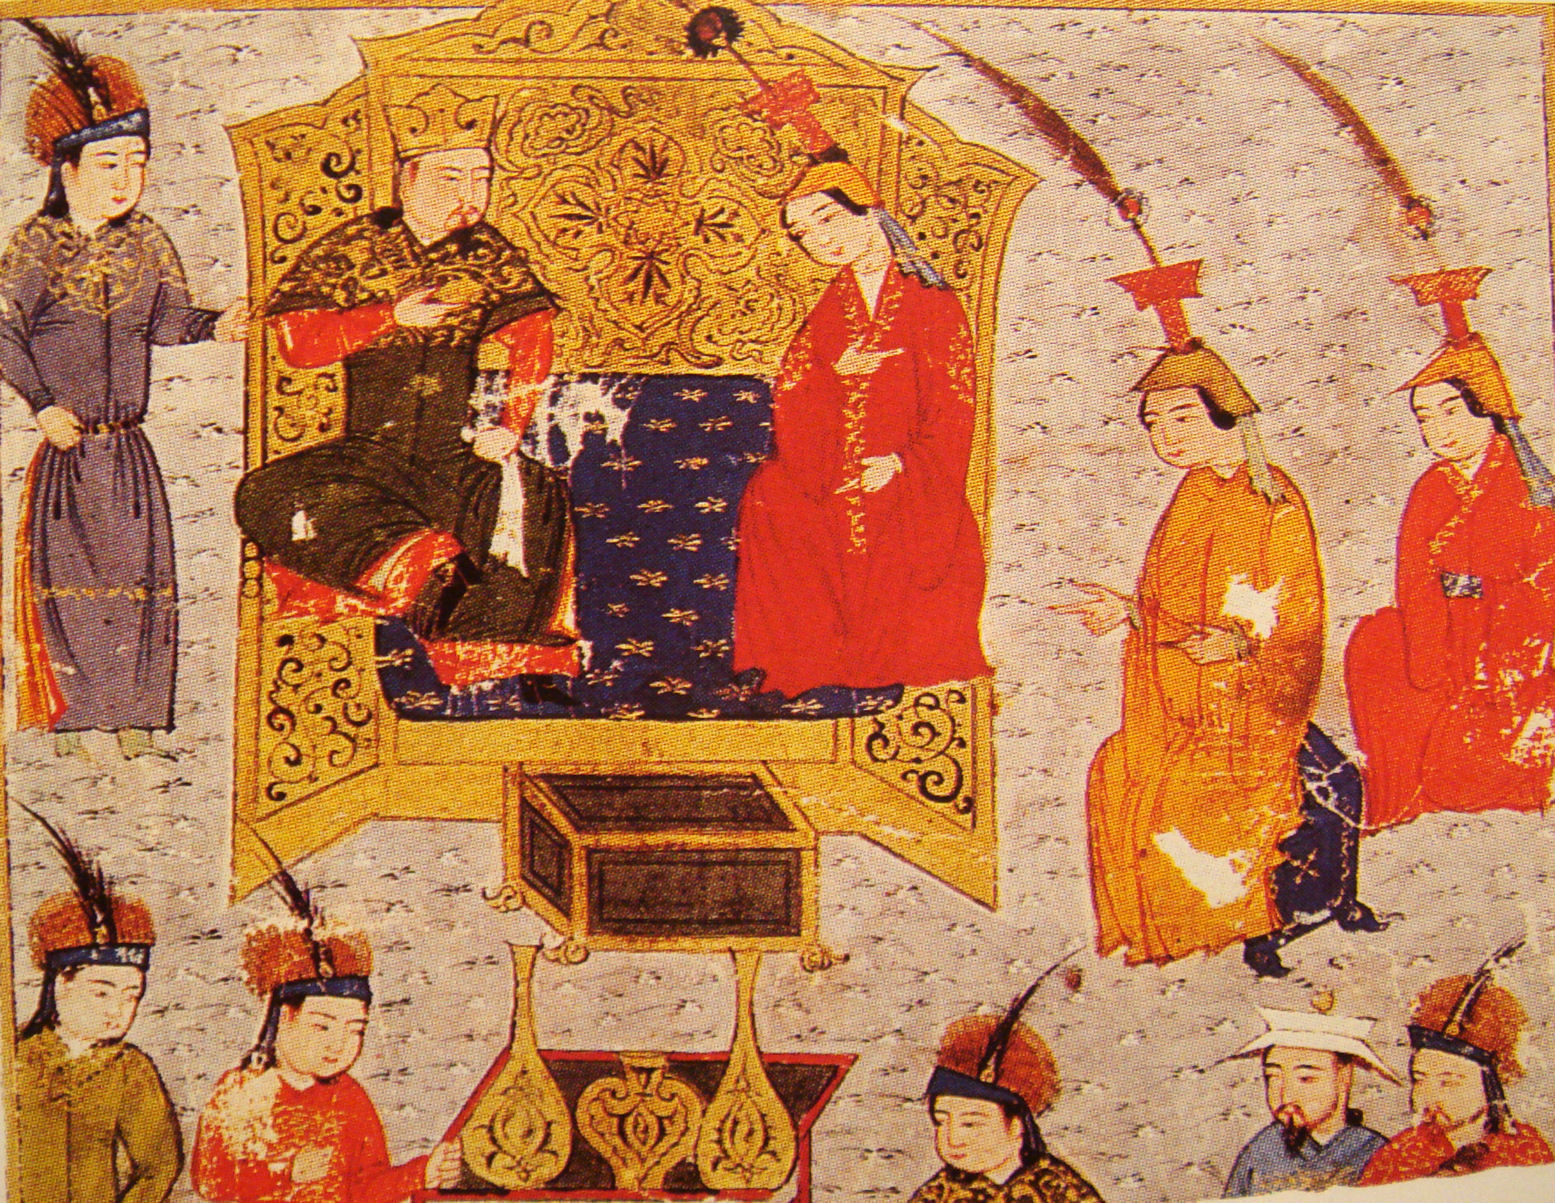 Painting shows king and queen surrounded by others at court